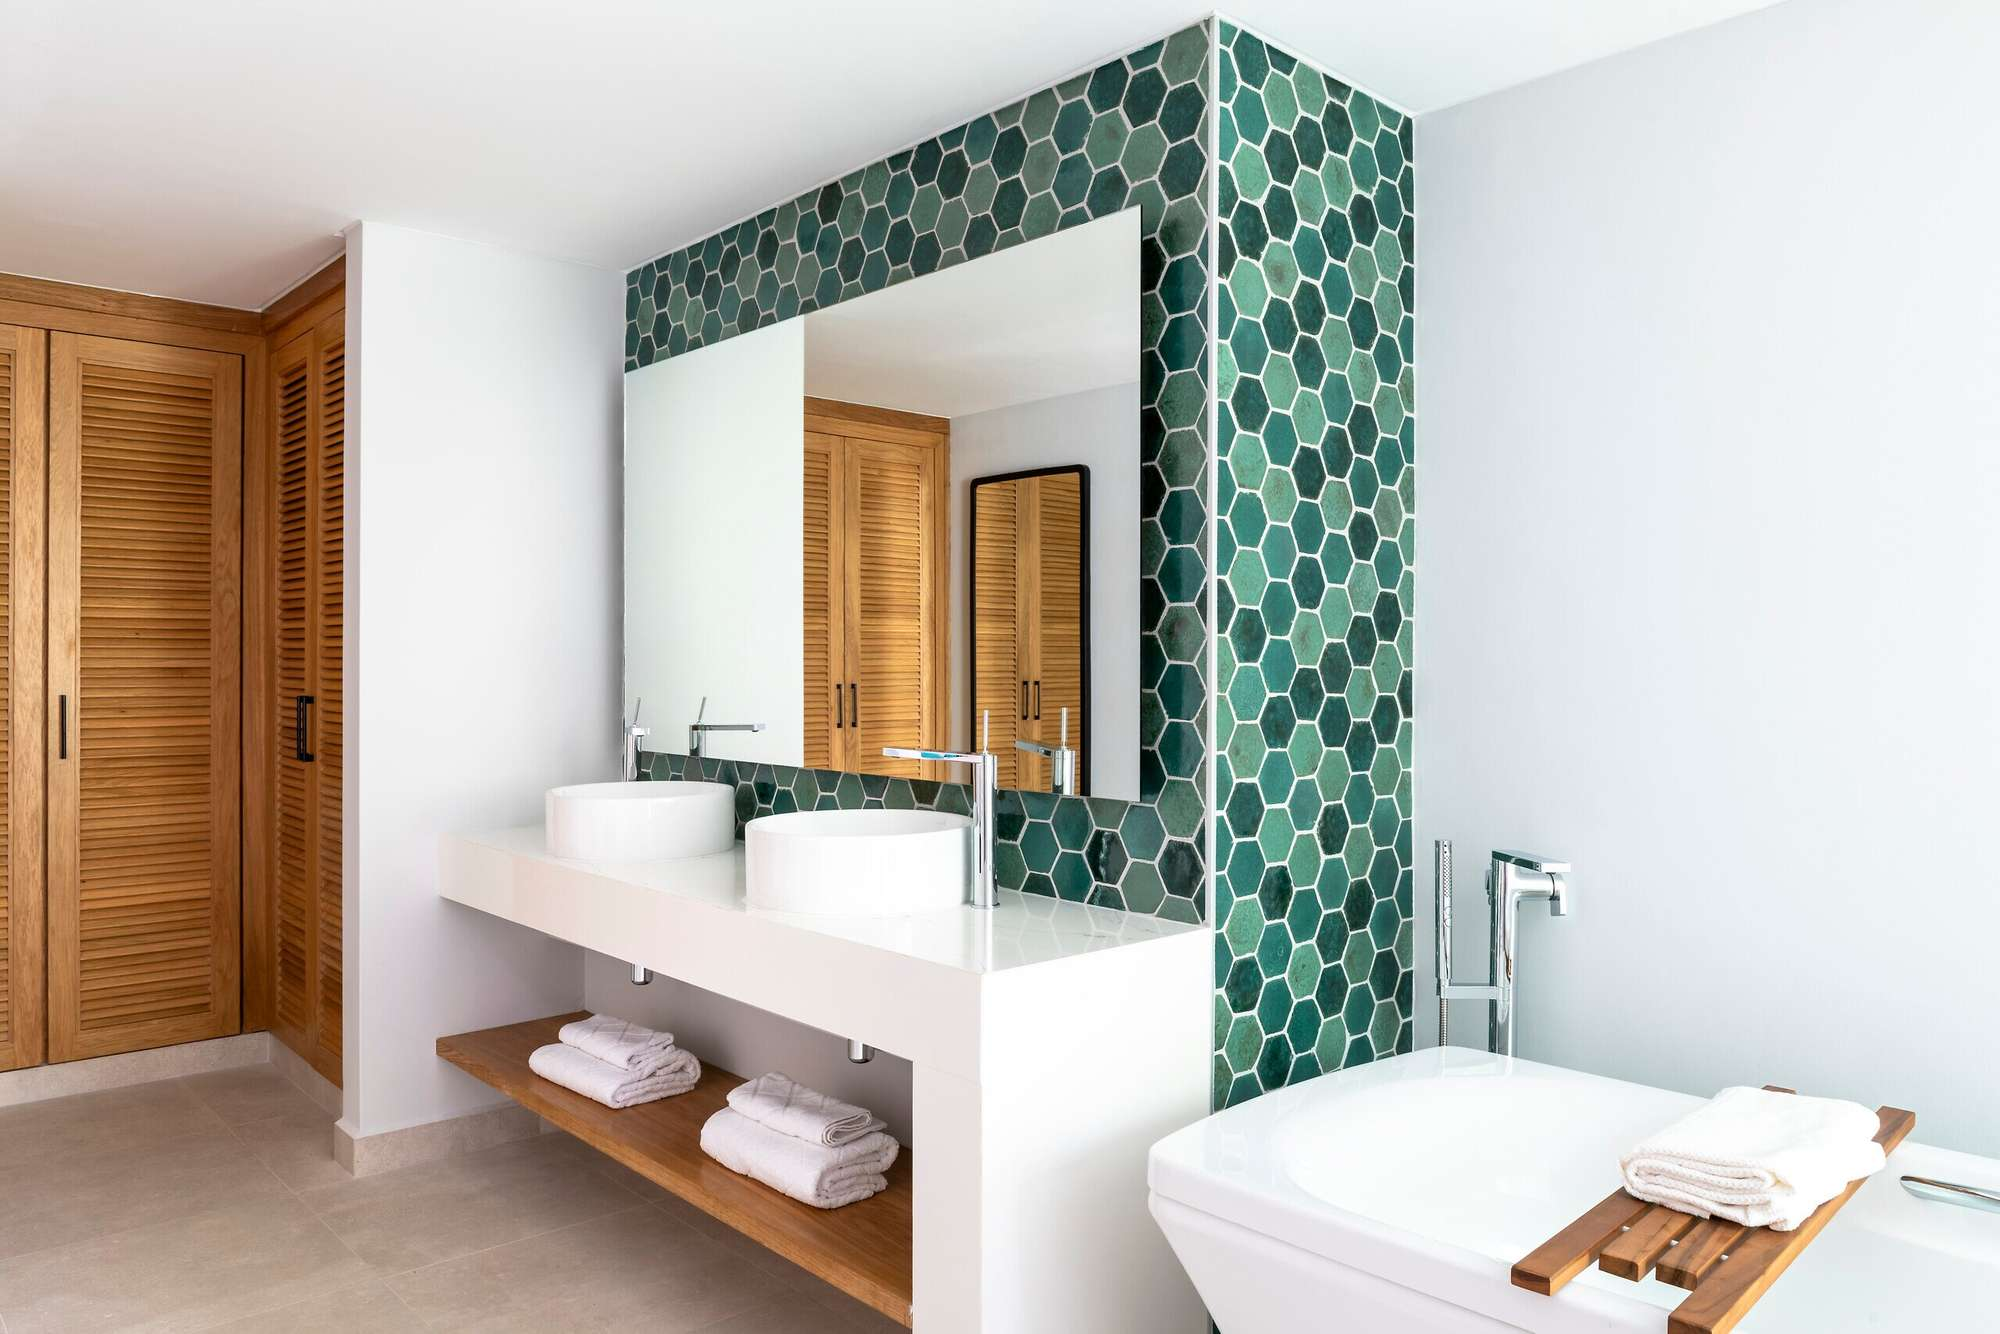 https___ns.clubmed.com_dream_EXCLUSIVE_COLLECTION_Resorts_Seychelles_249416-cqo7t8wscg-swhr (1)